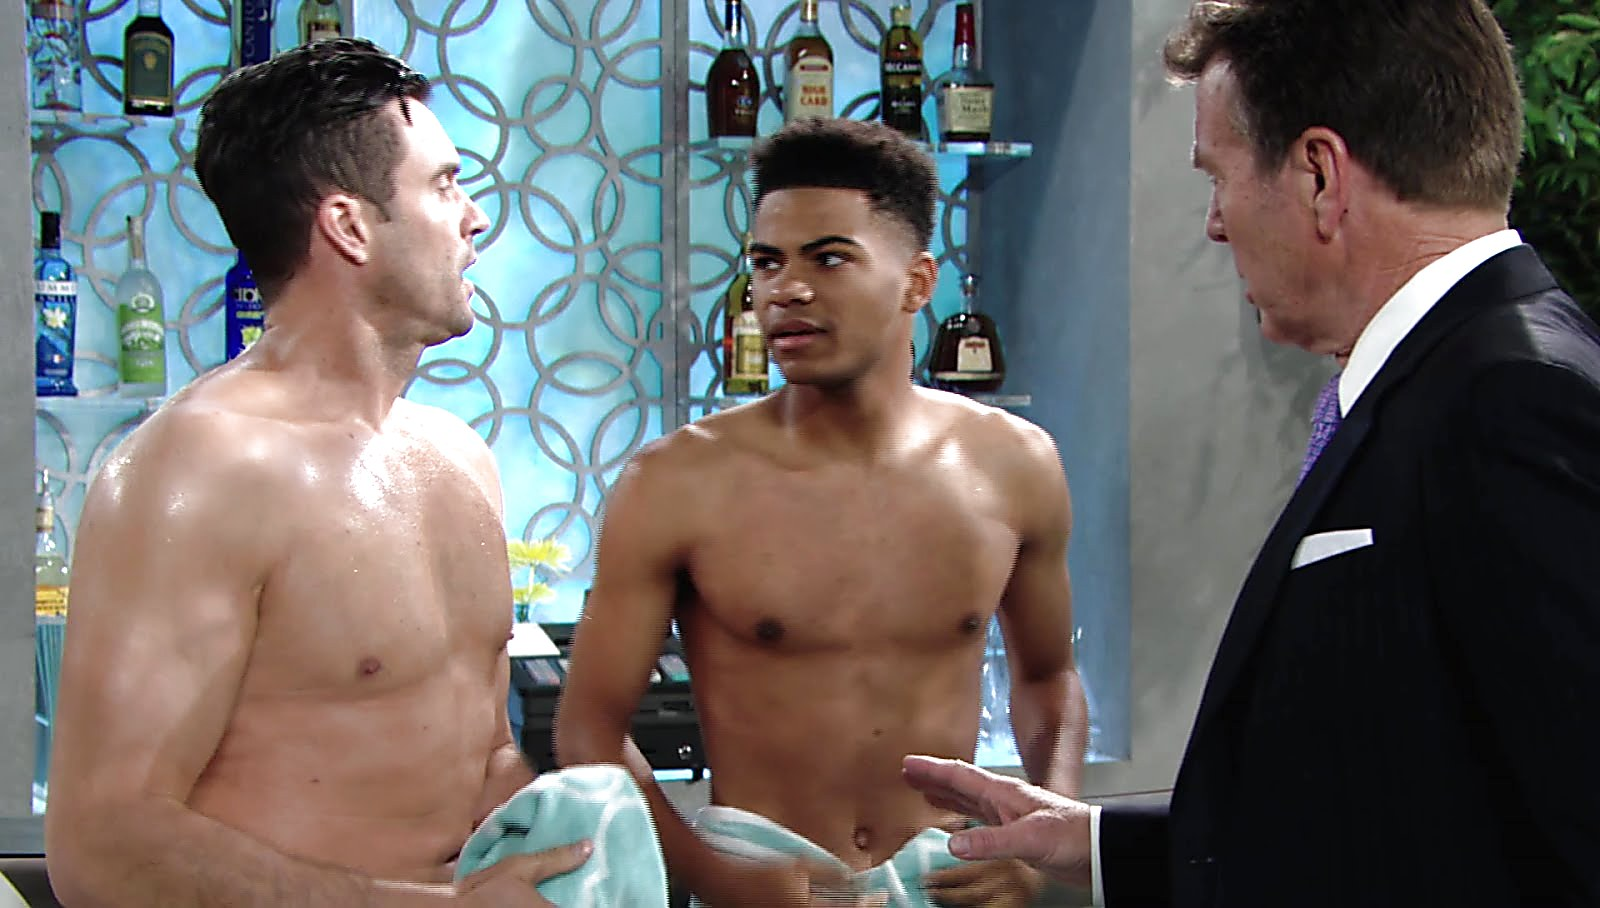 Daniel Goddard sexy shirtless scene June 22, 2018, 11am